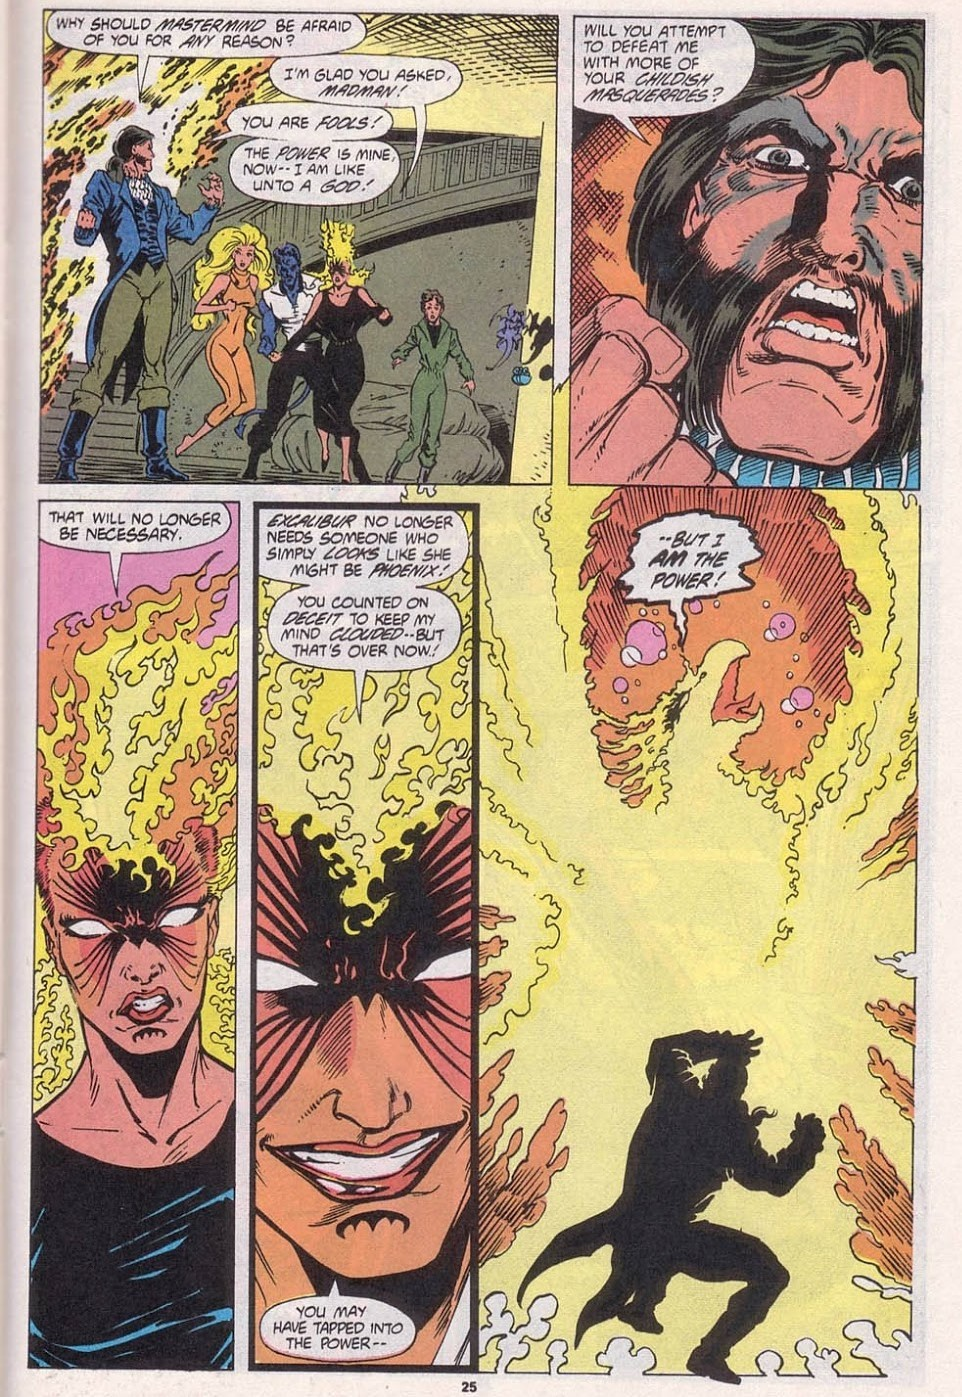 After Mastermind tricks her into letting him tap into the Phoenix Force by pretending to be Franklin Richards Rachel lashes out at him.